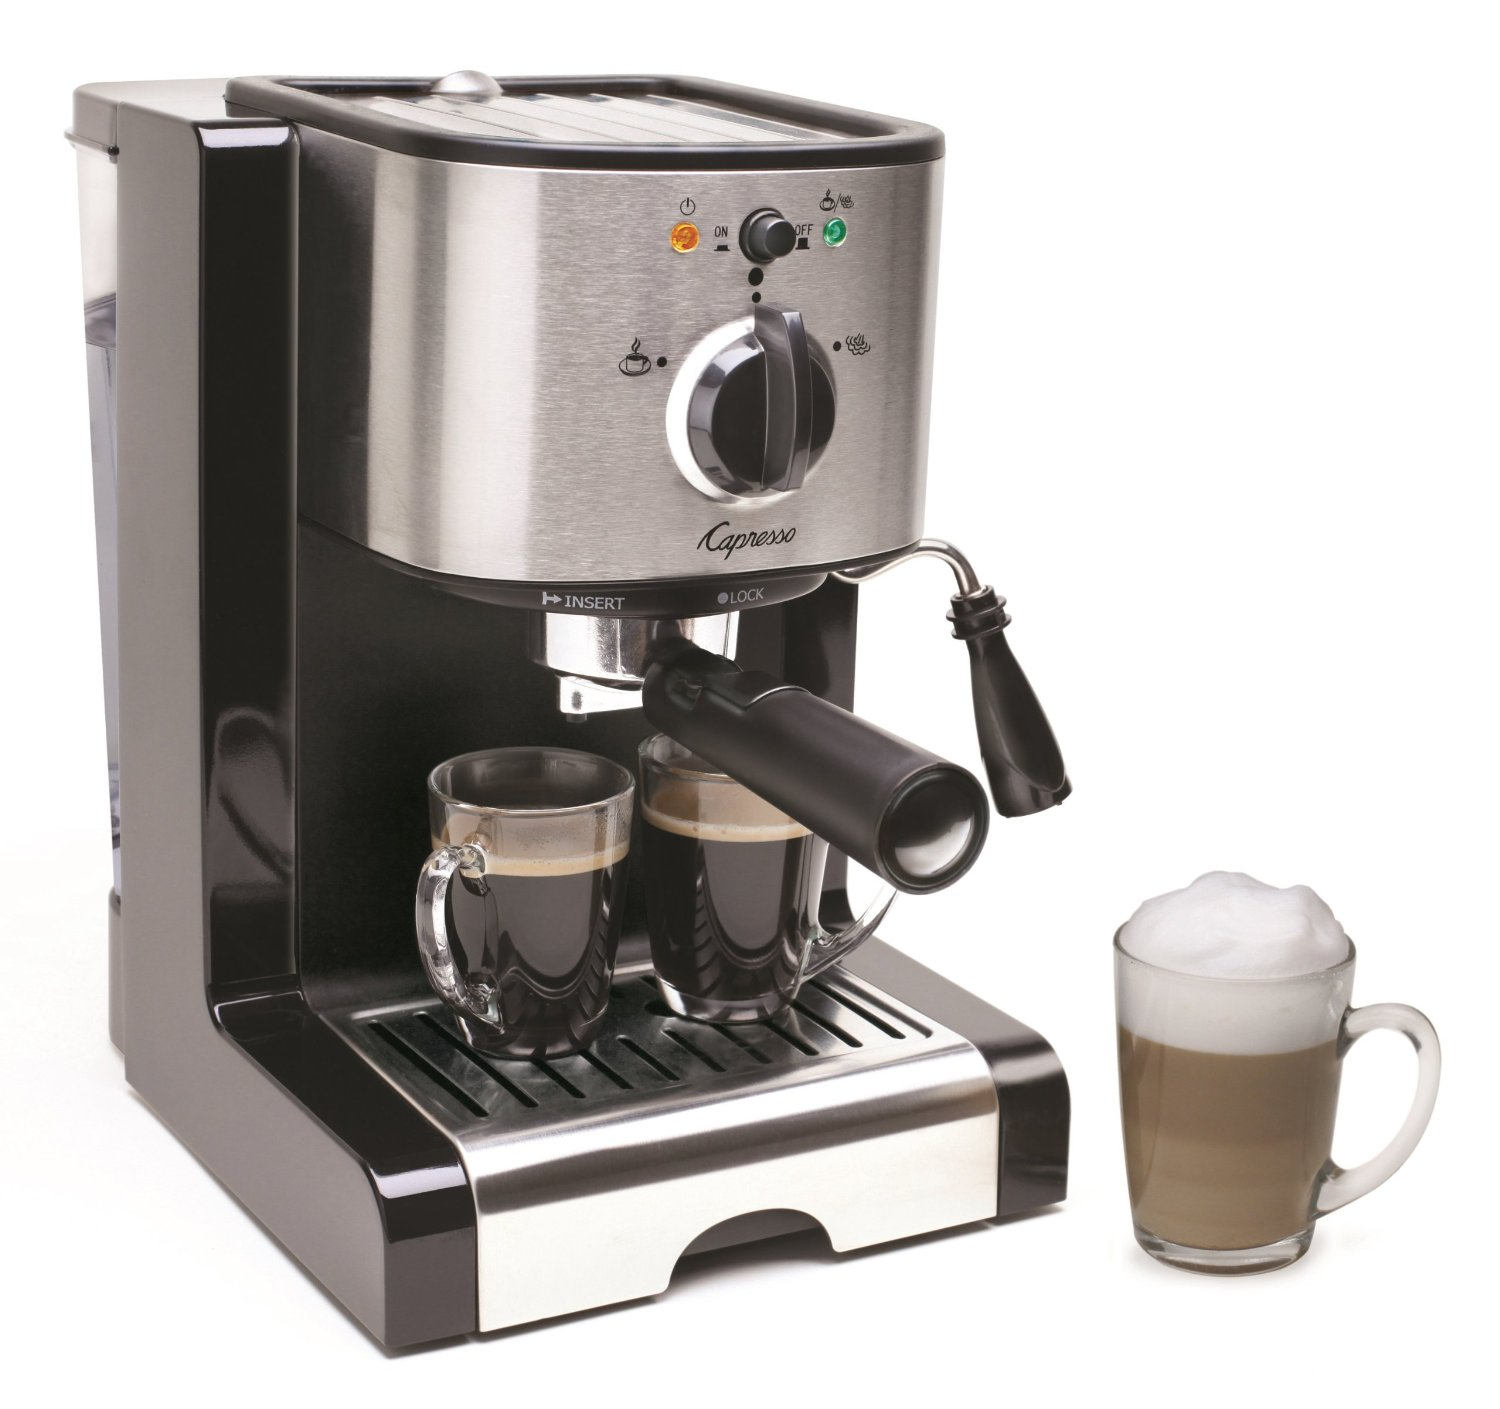 One Cup Latte Coffee Maker : Best Single Cup Coffee Maker - Cappuccinostar